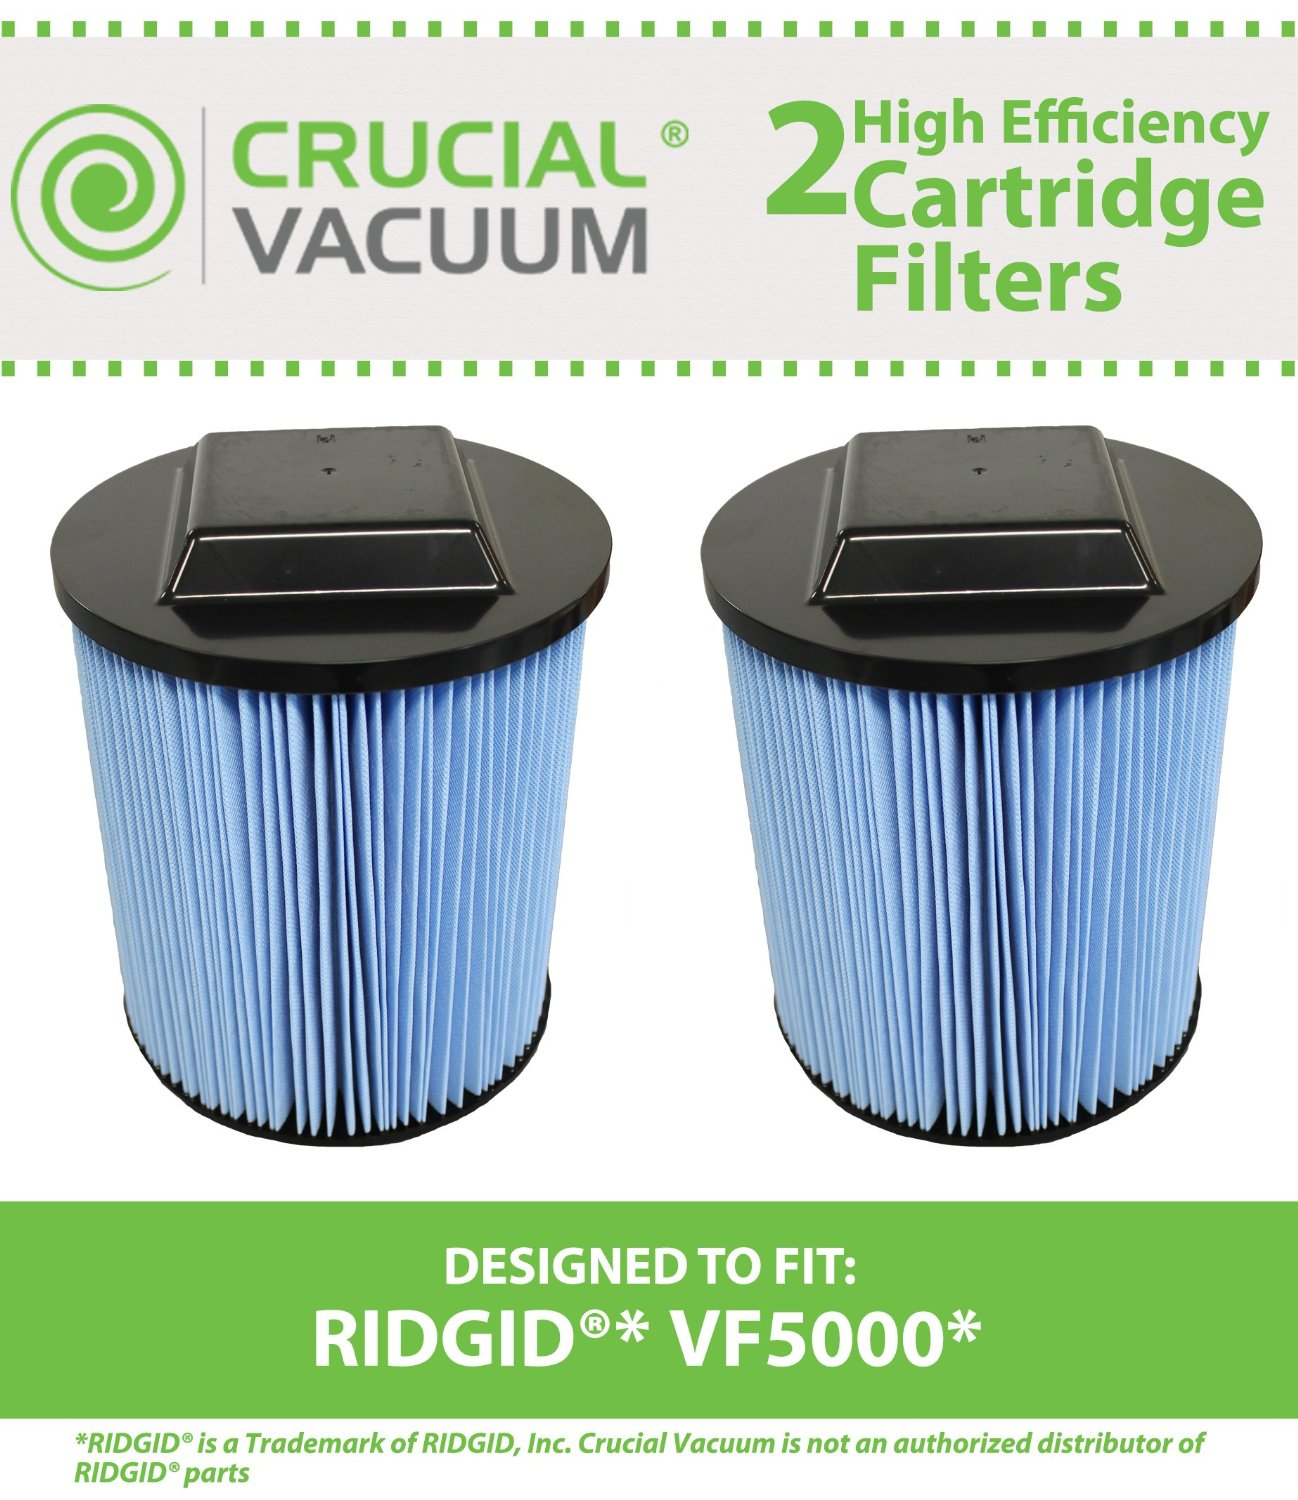 Think Crucial 2 Replacements for Ridgid VF5000 Filter Cartridge Fits 6-20 Gallon Wet & Dry Vacuums, Compatible With Part # VF5000, Washable & Reusable